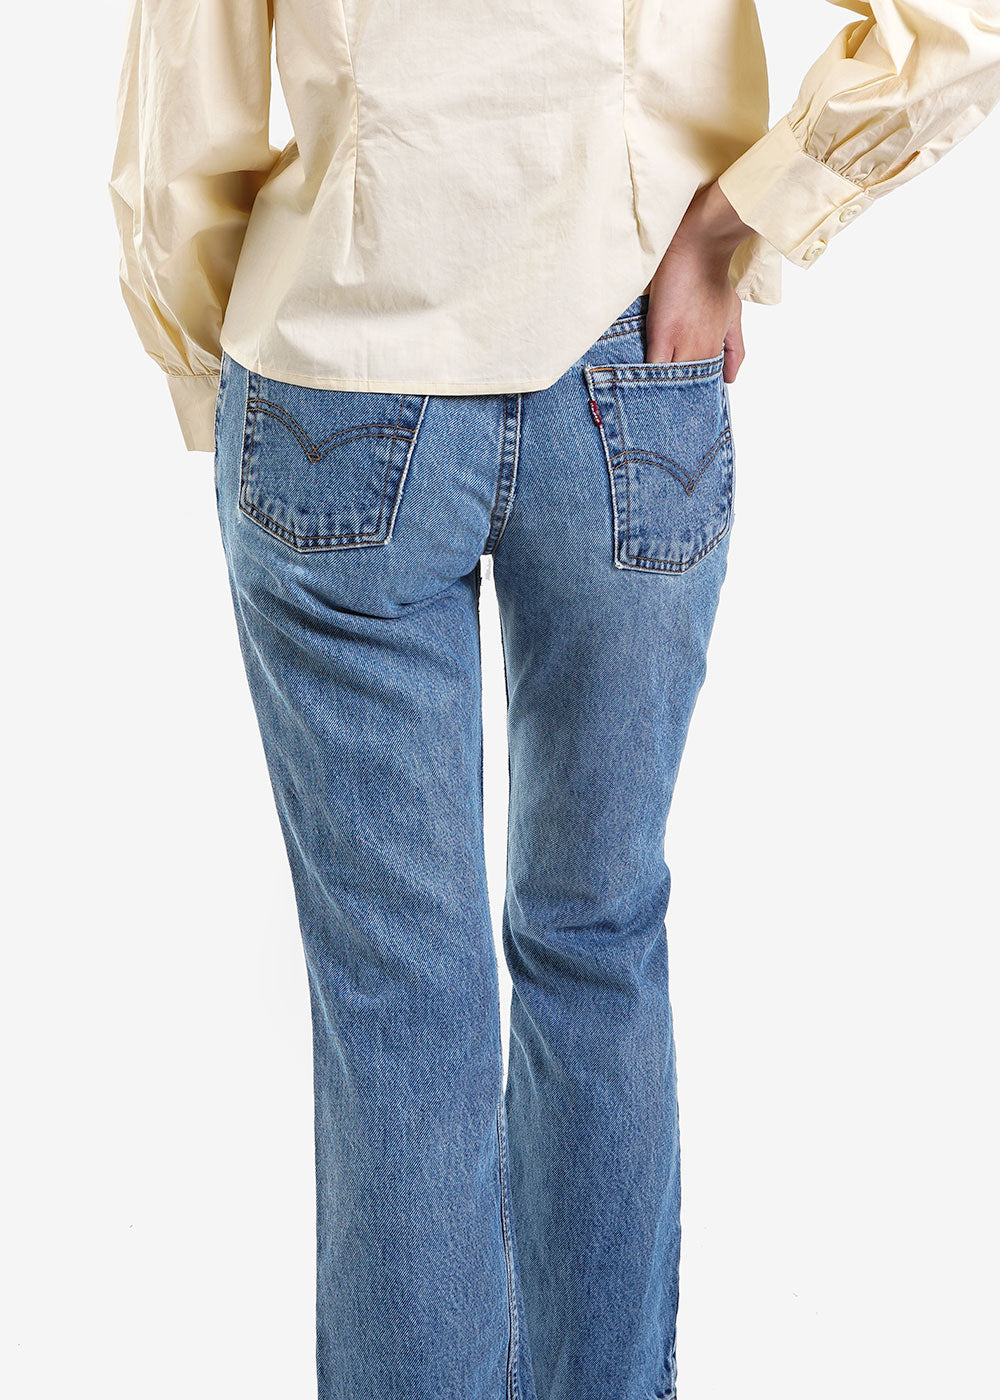 Denim Refinery Vintage Levi's 517 — Shop sustainable fashion and slow fashion at New Classics Studios